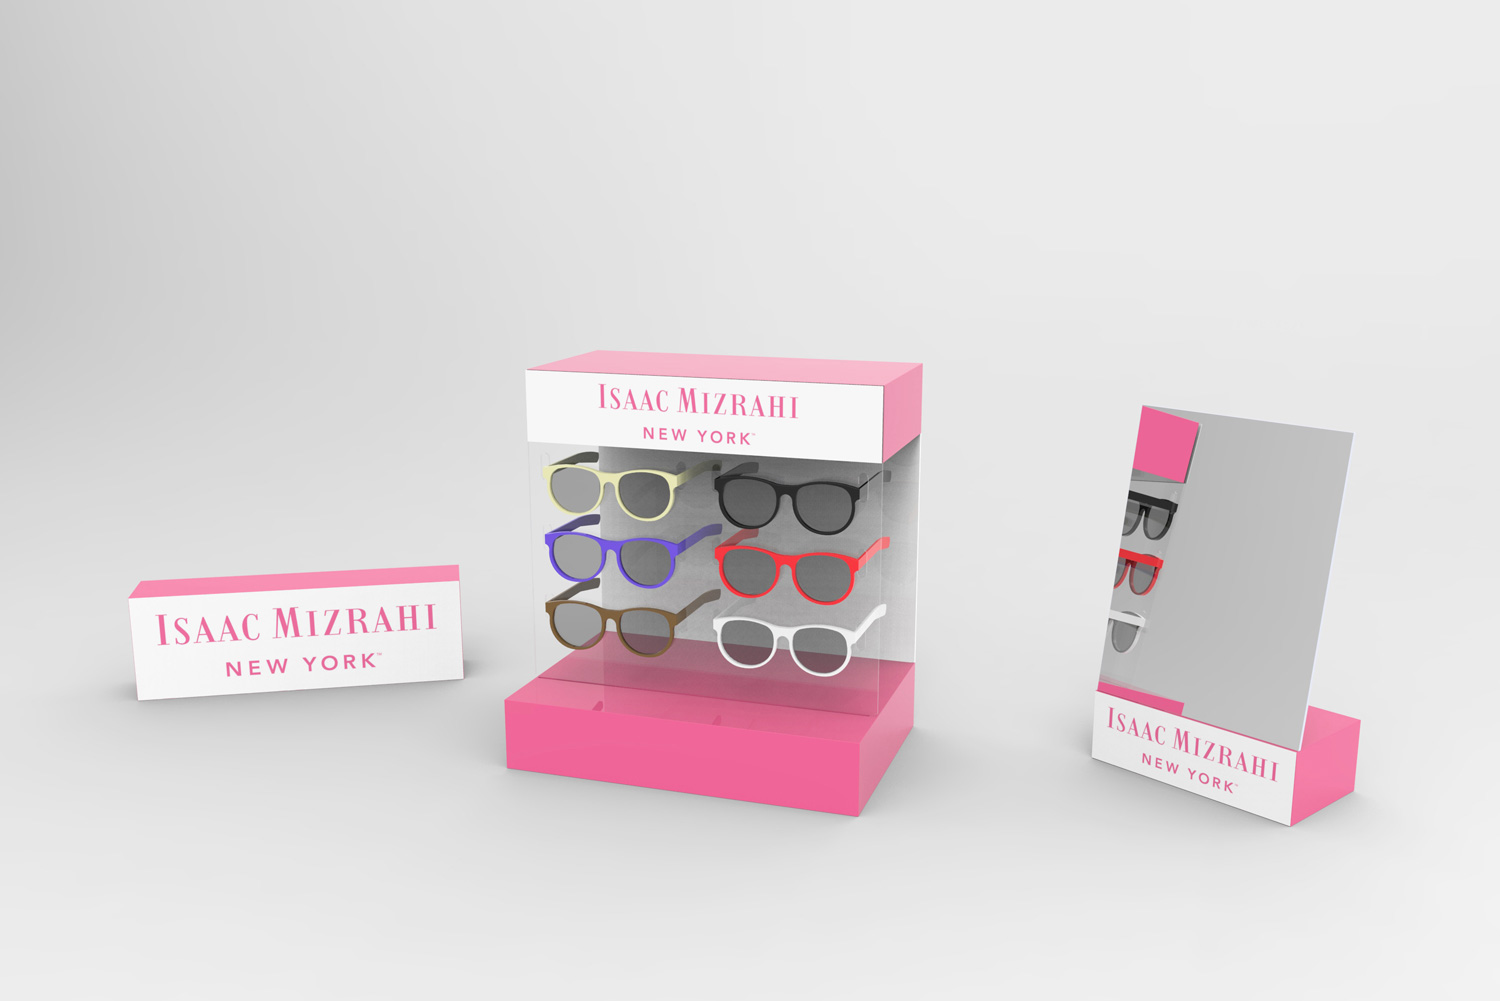 metaline isaacmizrahi display rendering